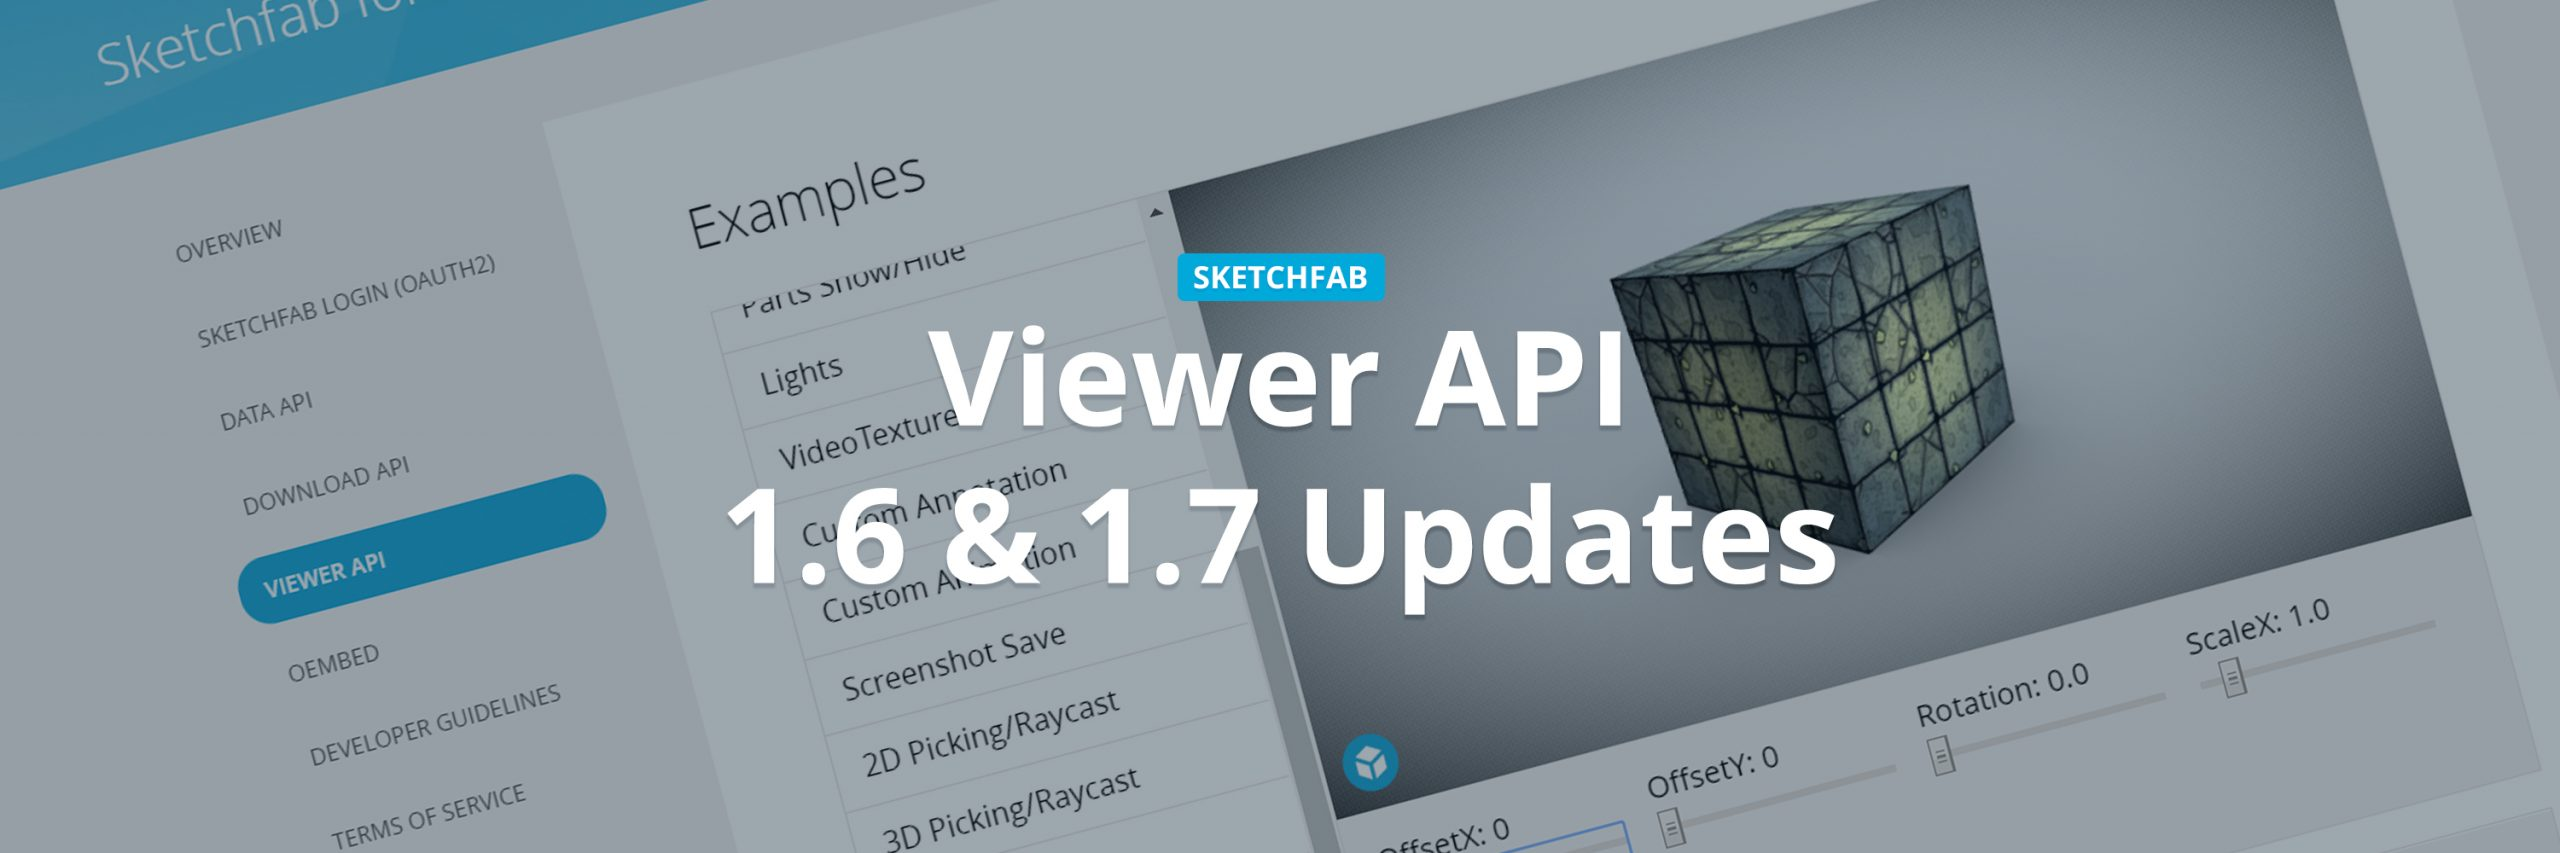 Sketchfab Viewer API 1.6 & 1.7 UV Transformation Demo